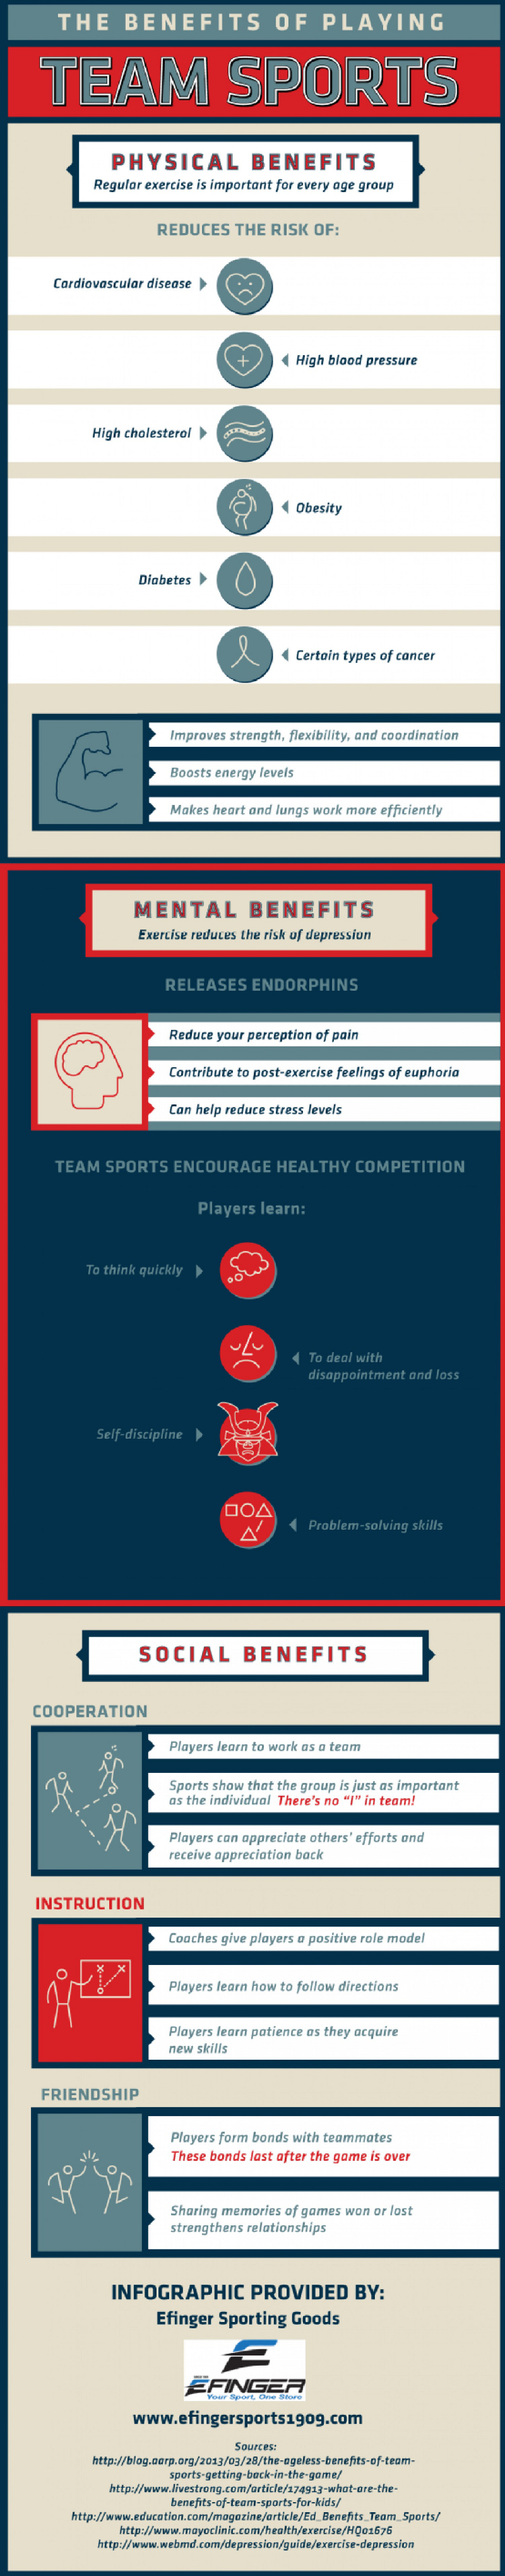 Health Benefits of Team Sports